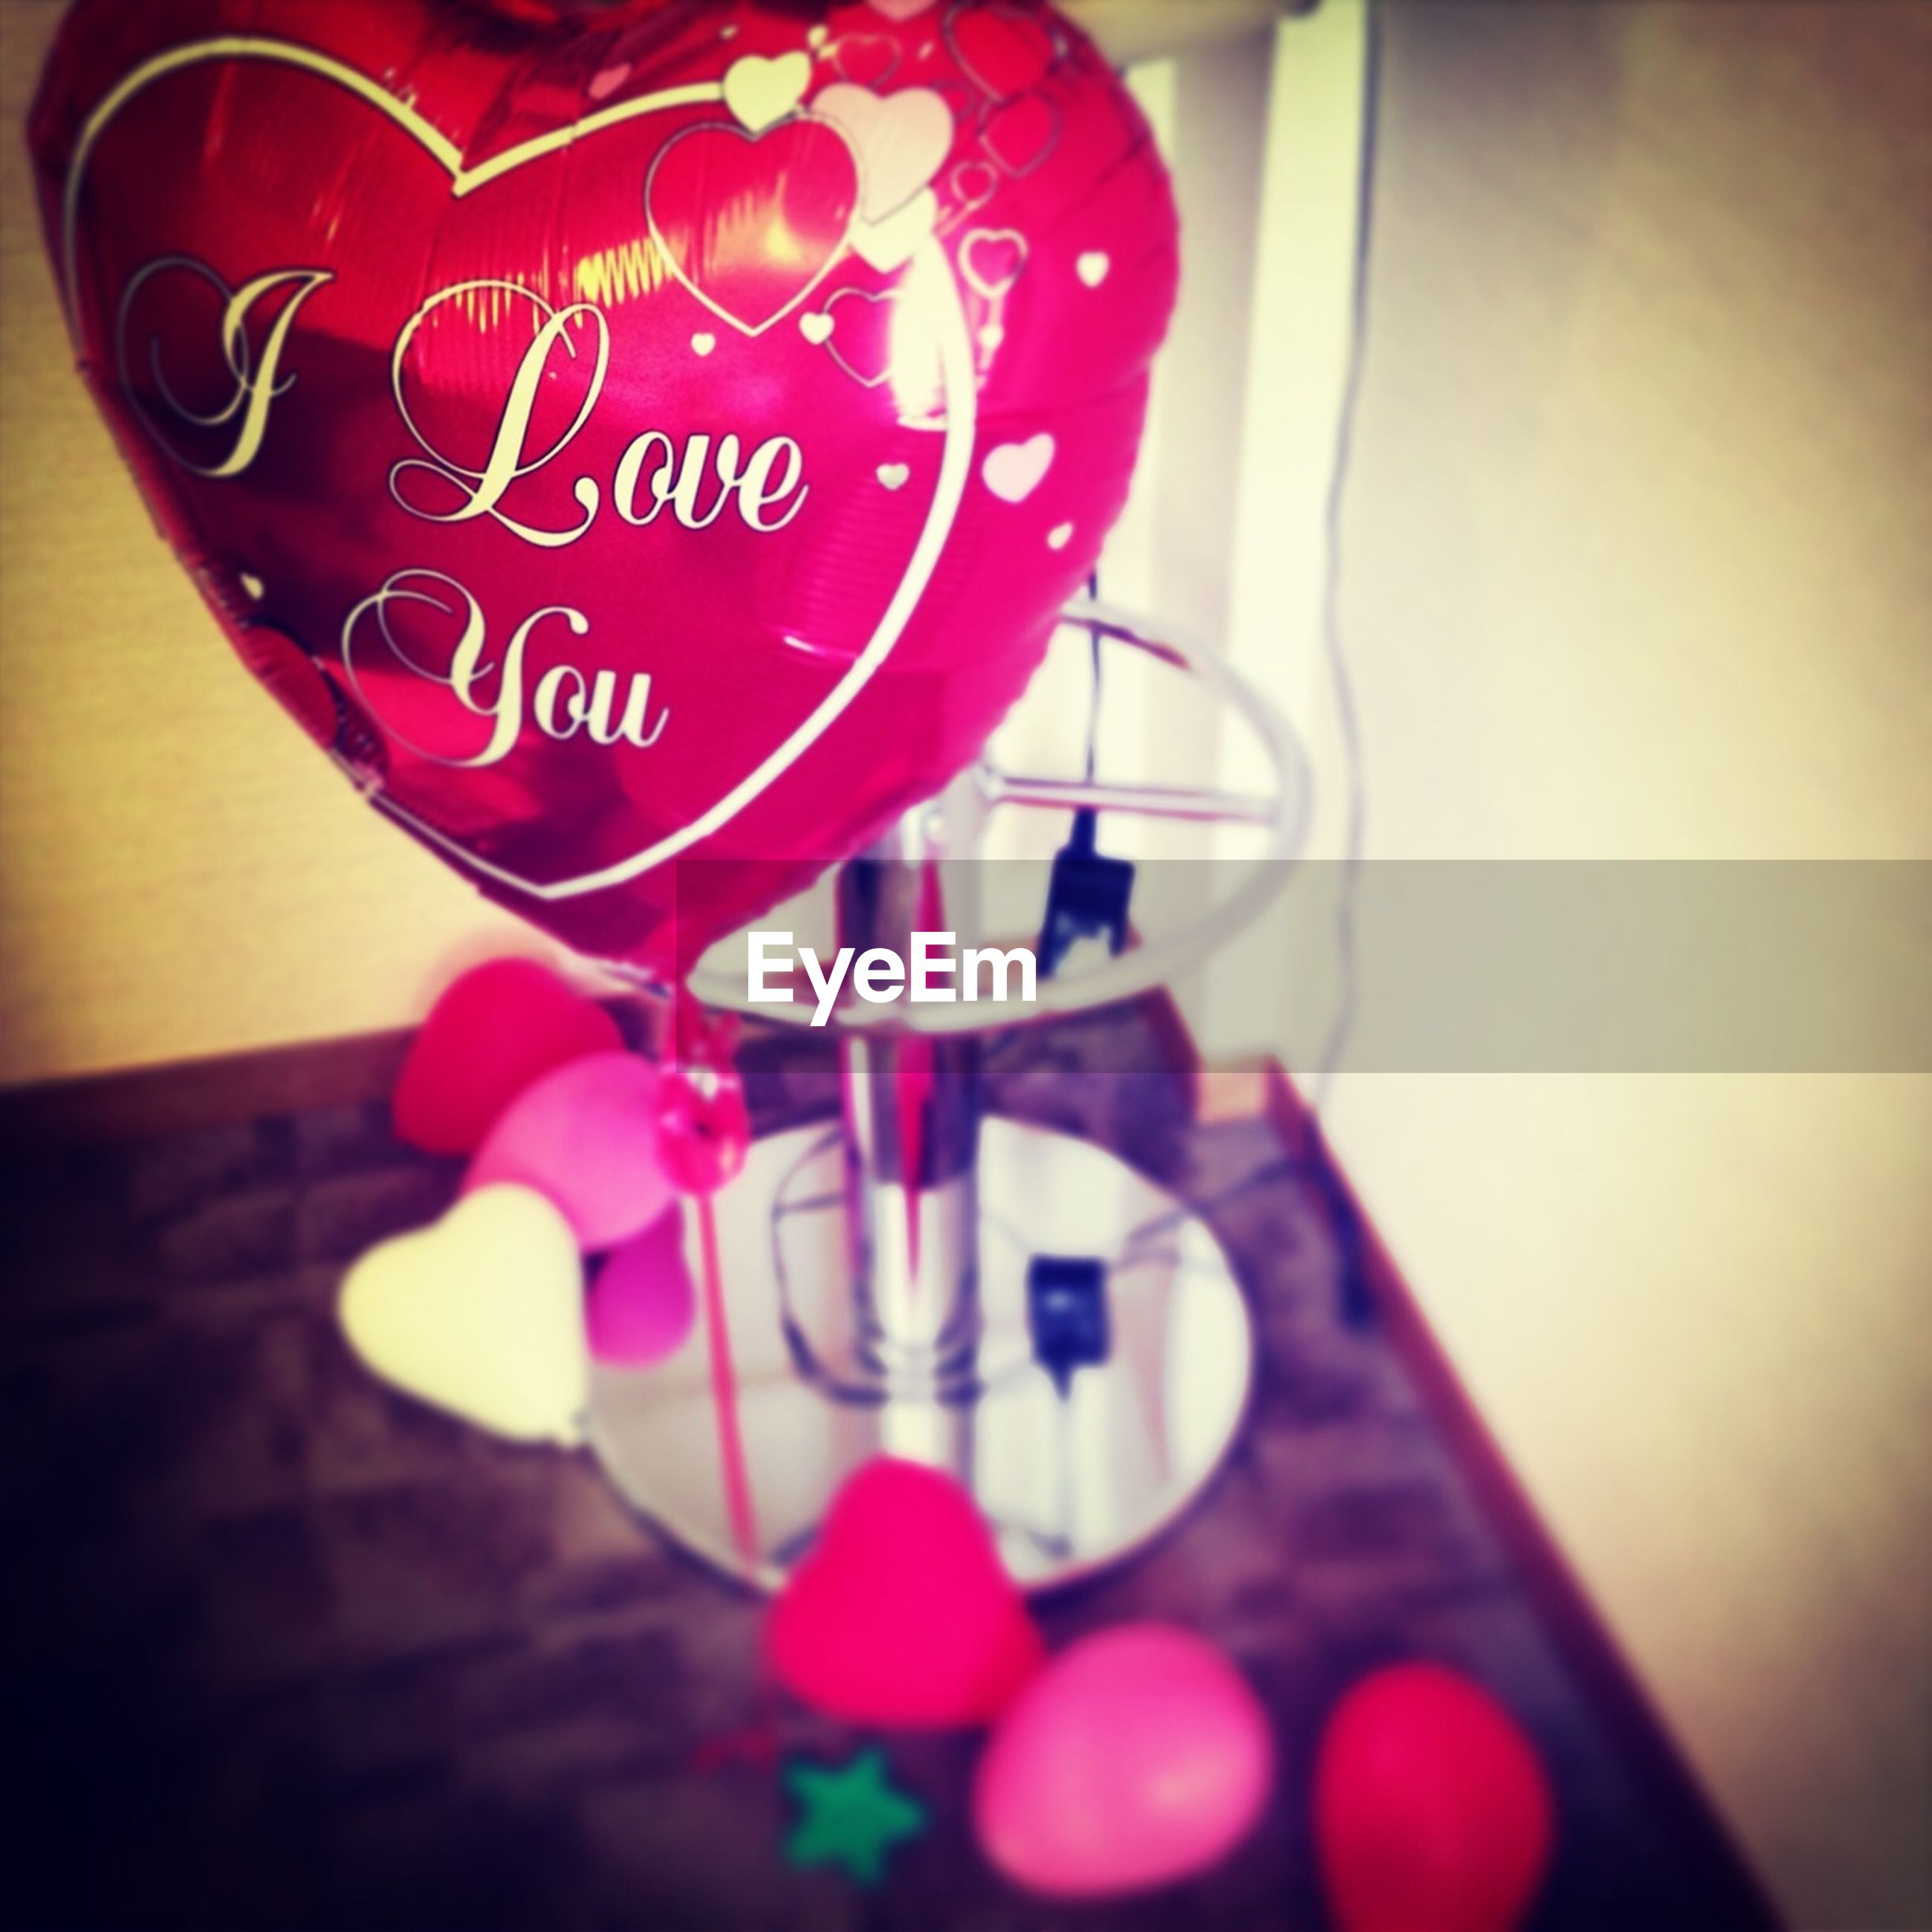 indoors, text, close-up, red, still life, communication, western script, table, focus on foreground, selective focus, decoration, hanging, pink color, heart shape, no people, celebration, love, glass - material, illuminated, lighting equipment